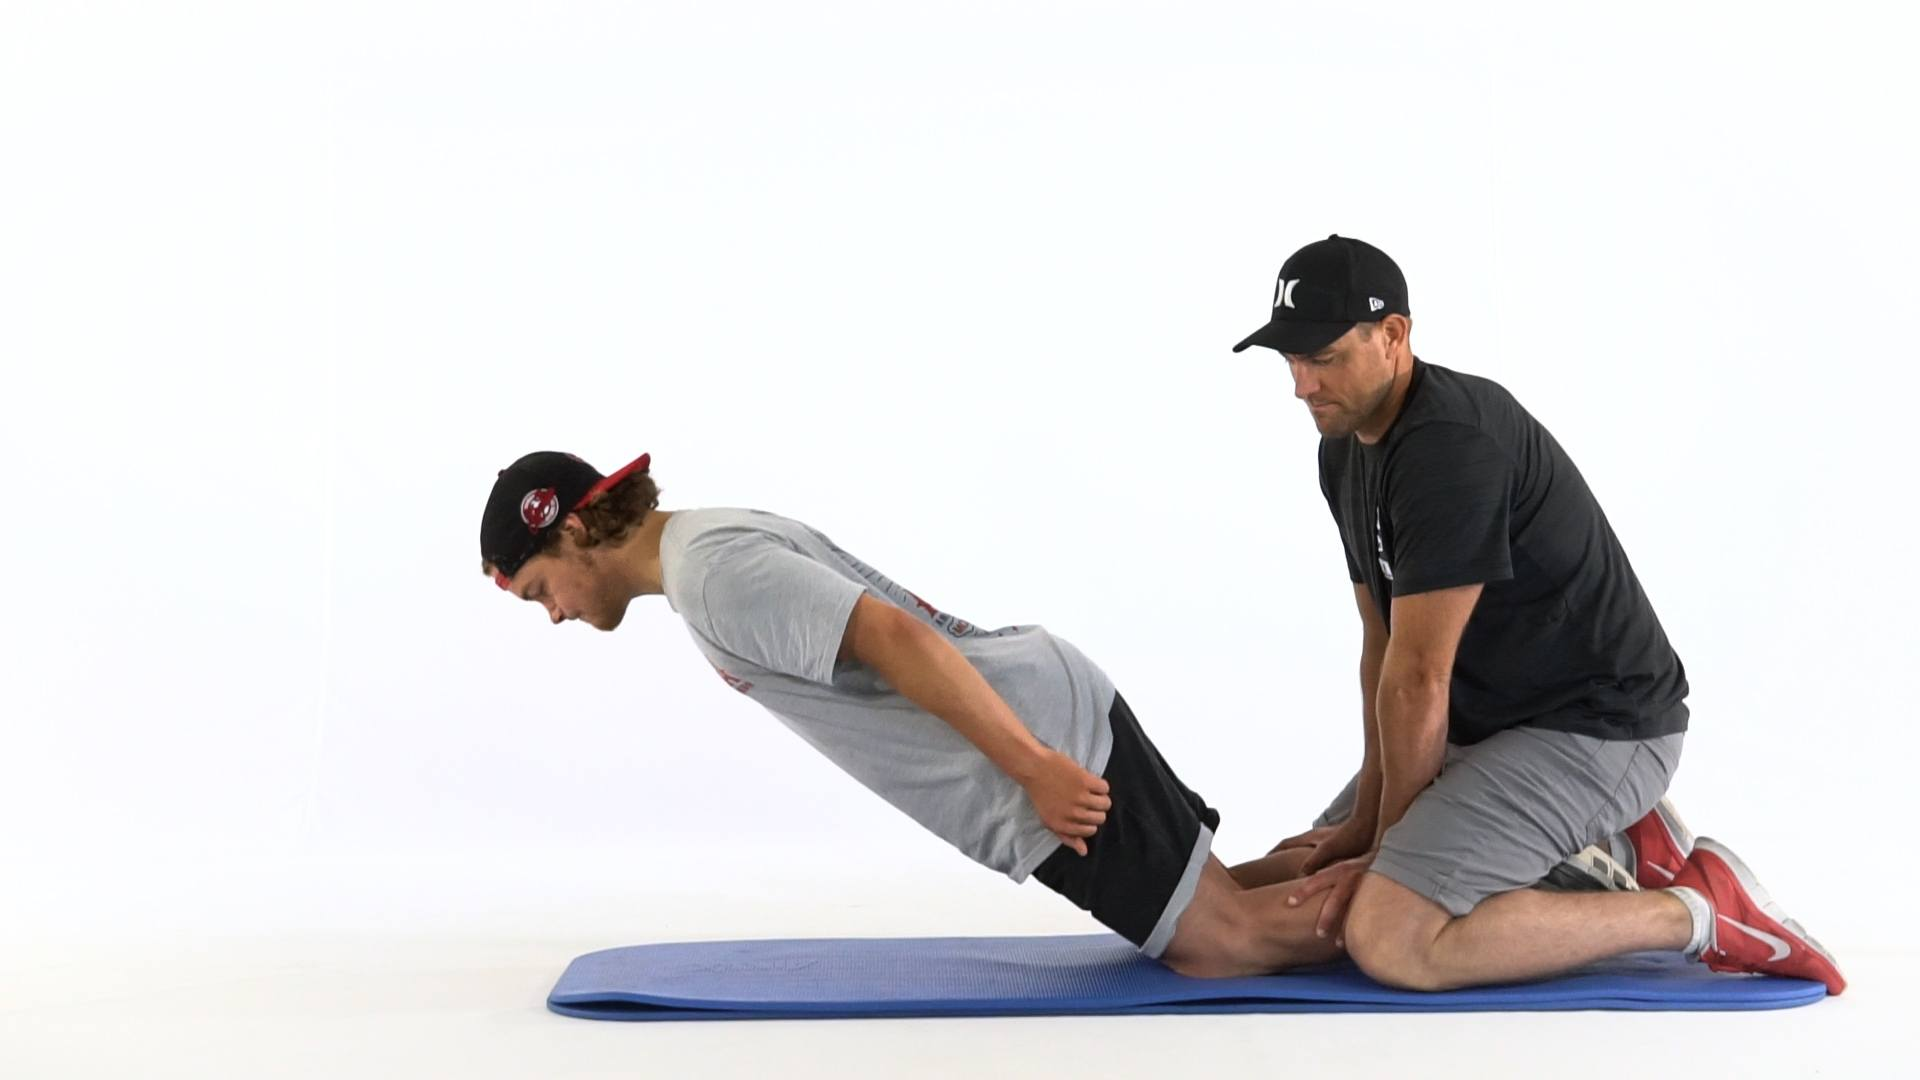 Picture of a man training natural leg curls while his workout partner is holding his legs in place